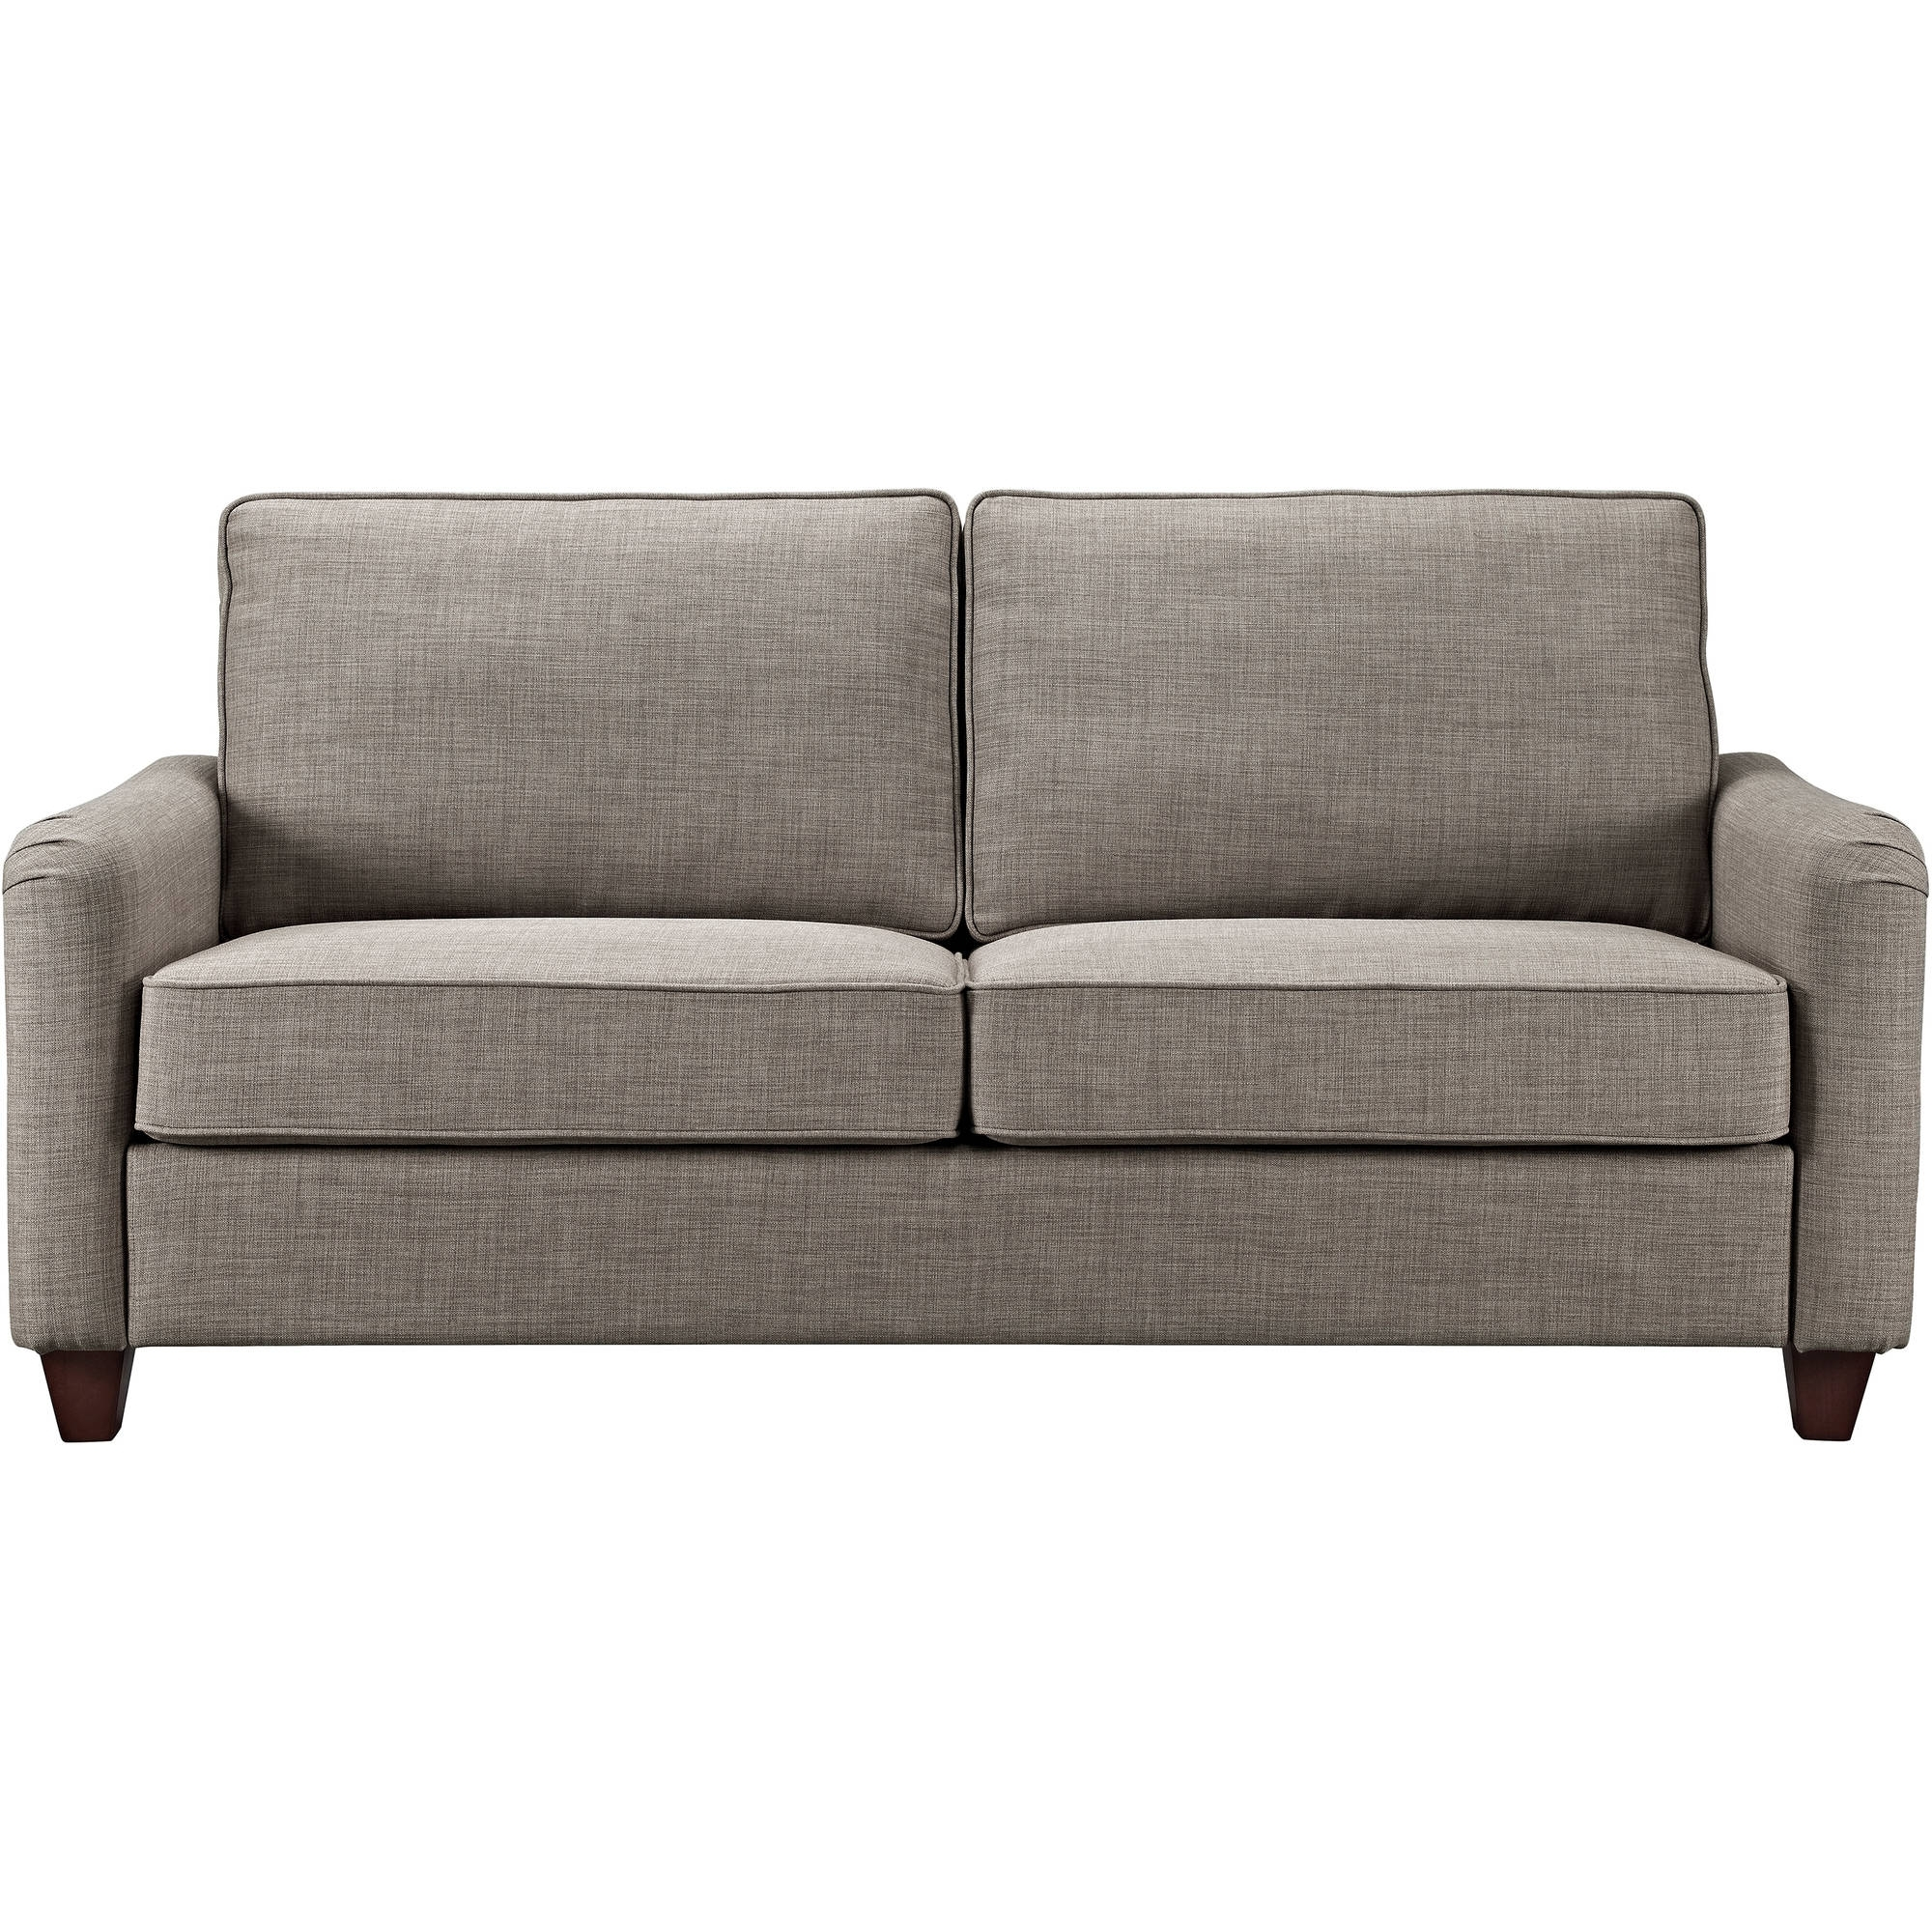 Most Popular Sectional Sofas Under 300 Regarding Sofas & Couches – Walmart (View 10 of 20)